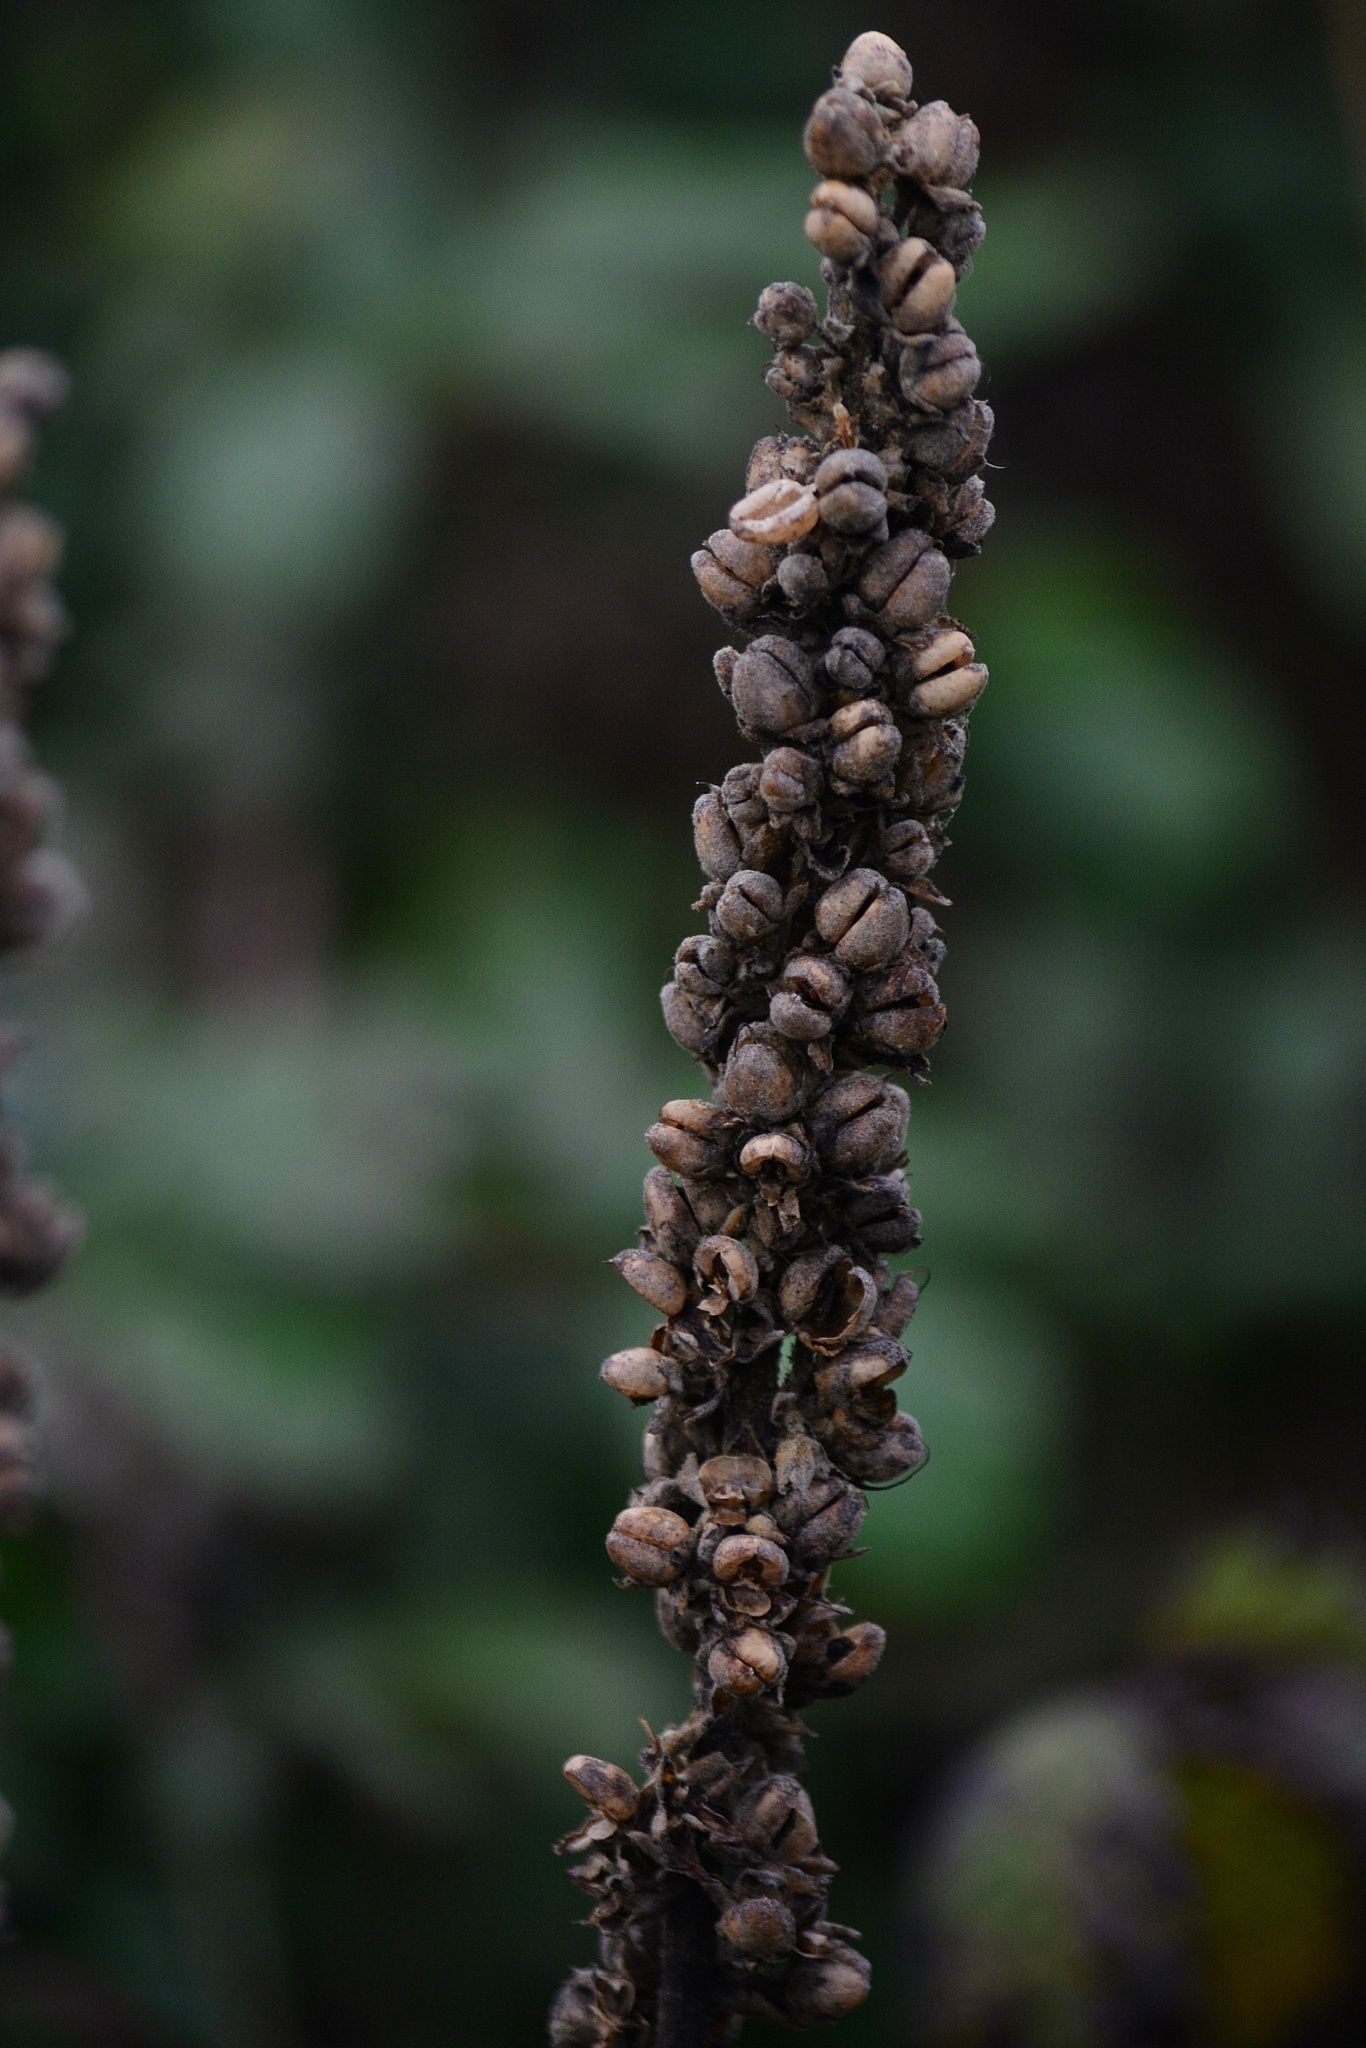 Puffed Wheat Plant? by tim.wells.79